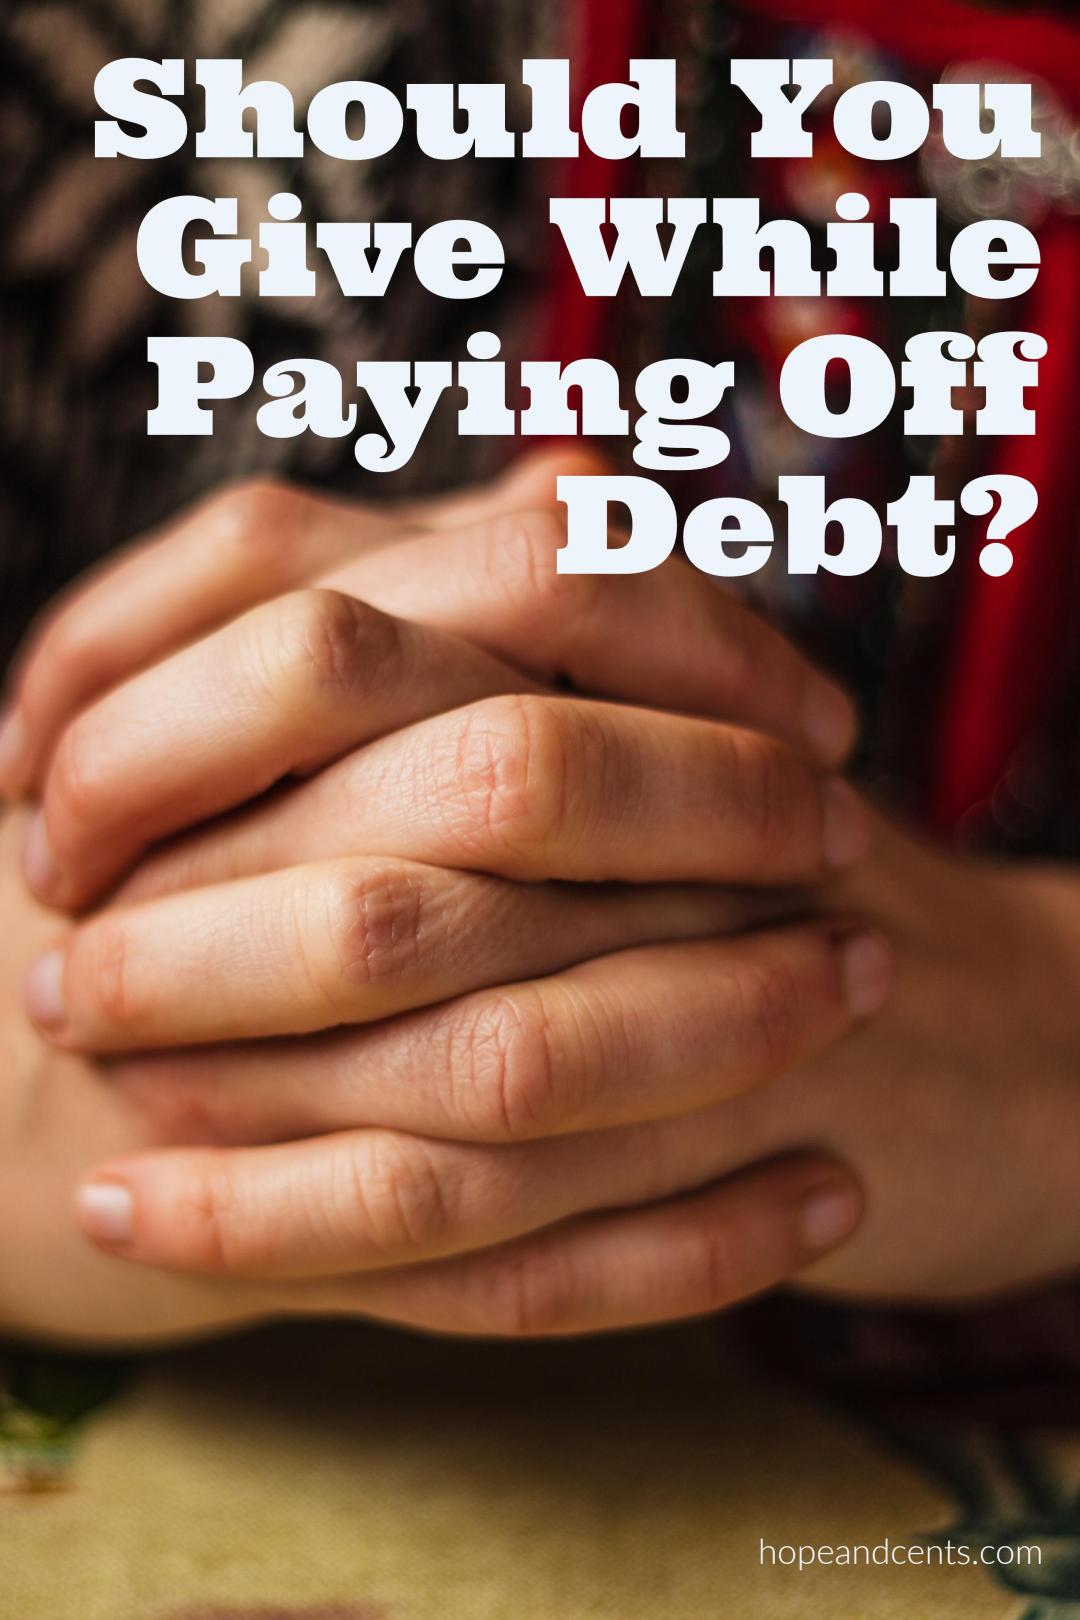 Have you ever wondered if you should give while paying off debt?  If you want the debt gone fast, should you just focus on that or should giving be a priority?